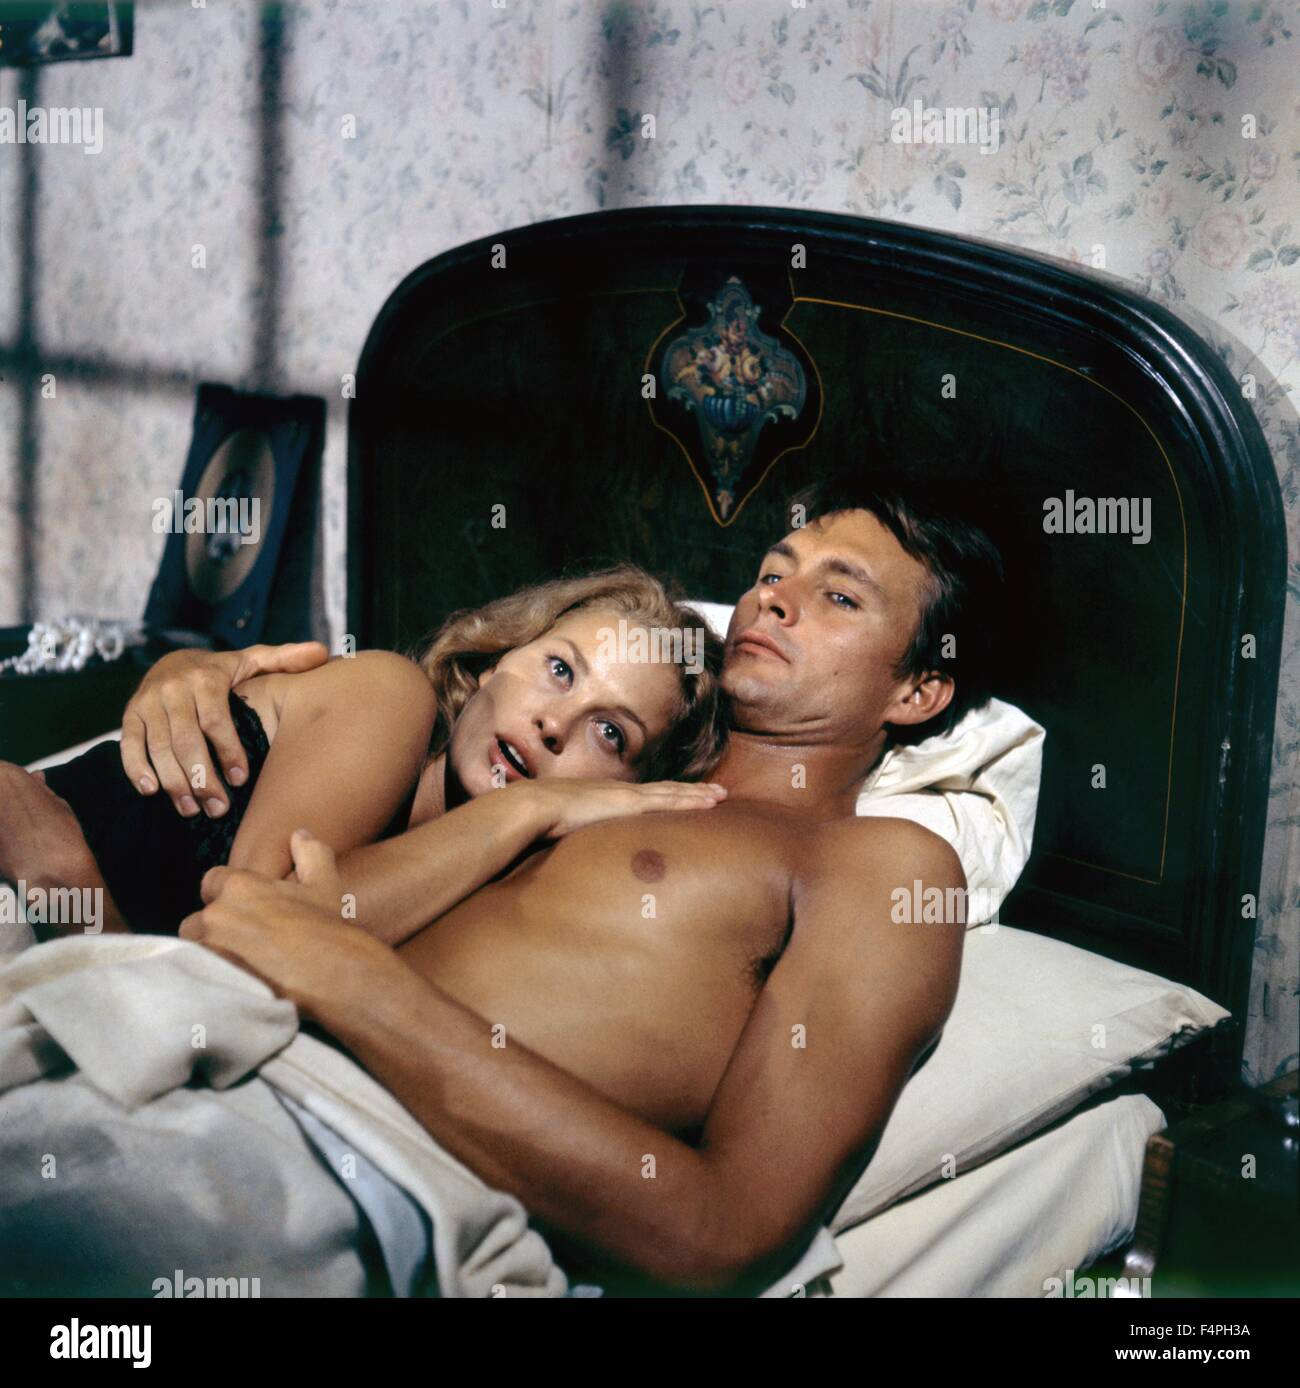 Faye Dunaway and John Phillip Law / Hurry Sundown / 1967 directed by Otto Preminger - Stock Image